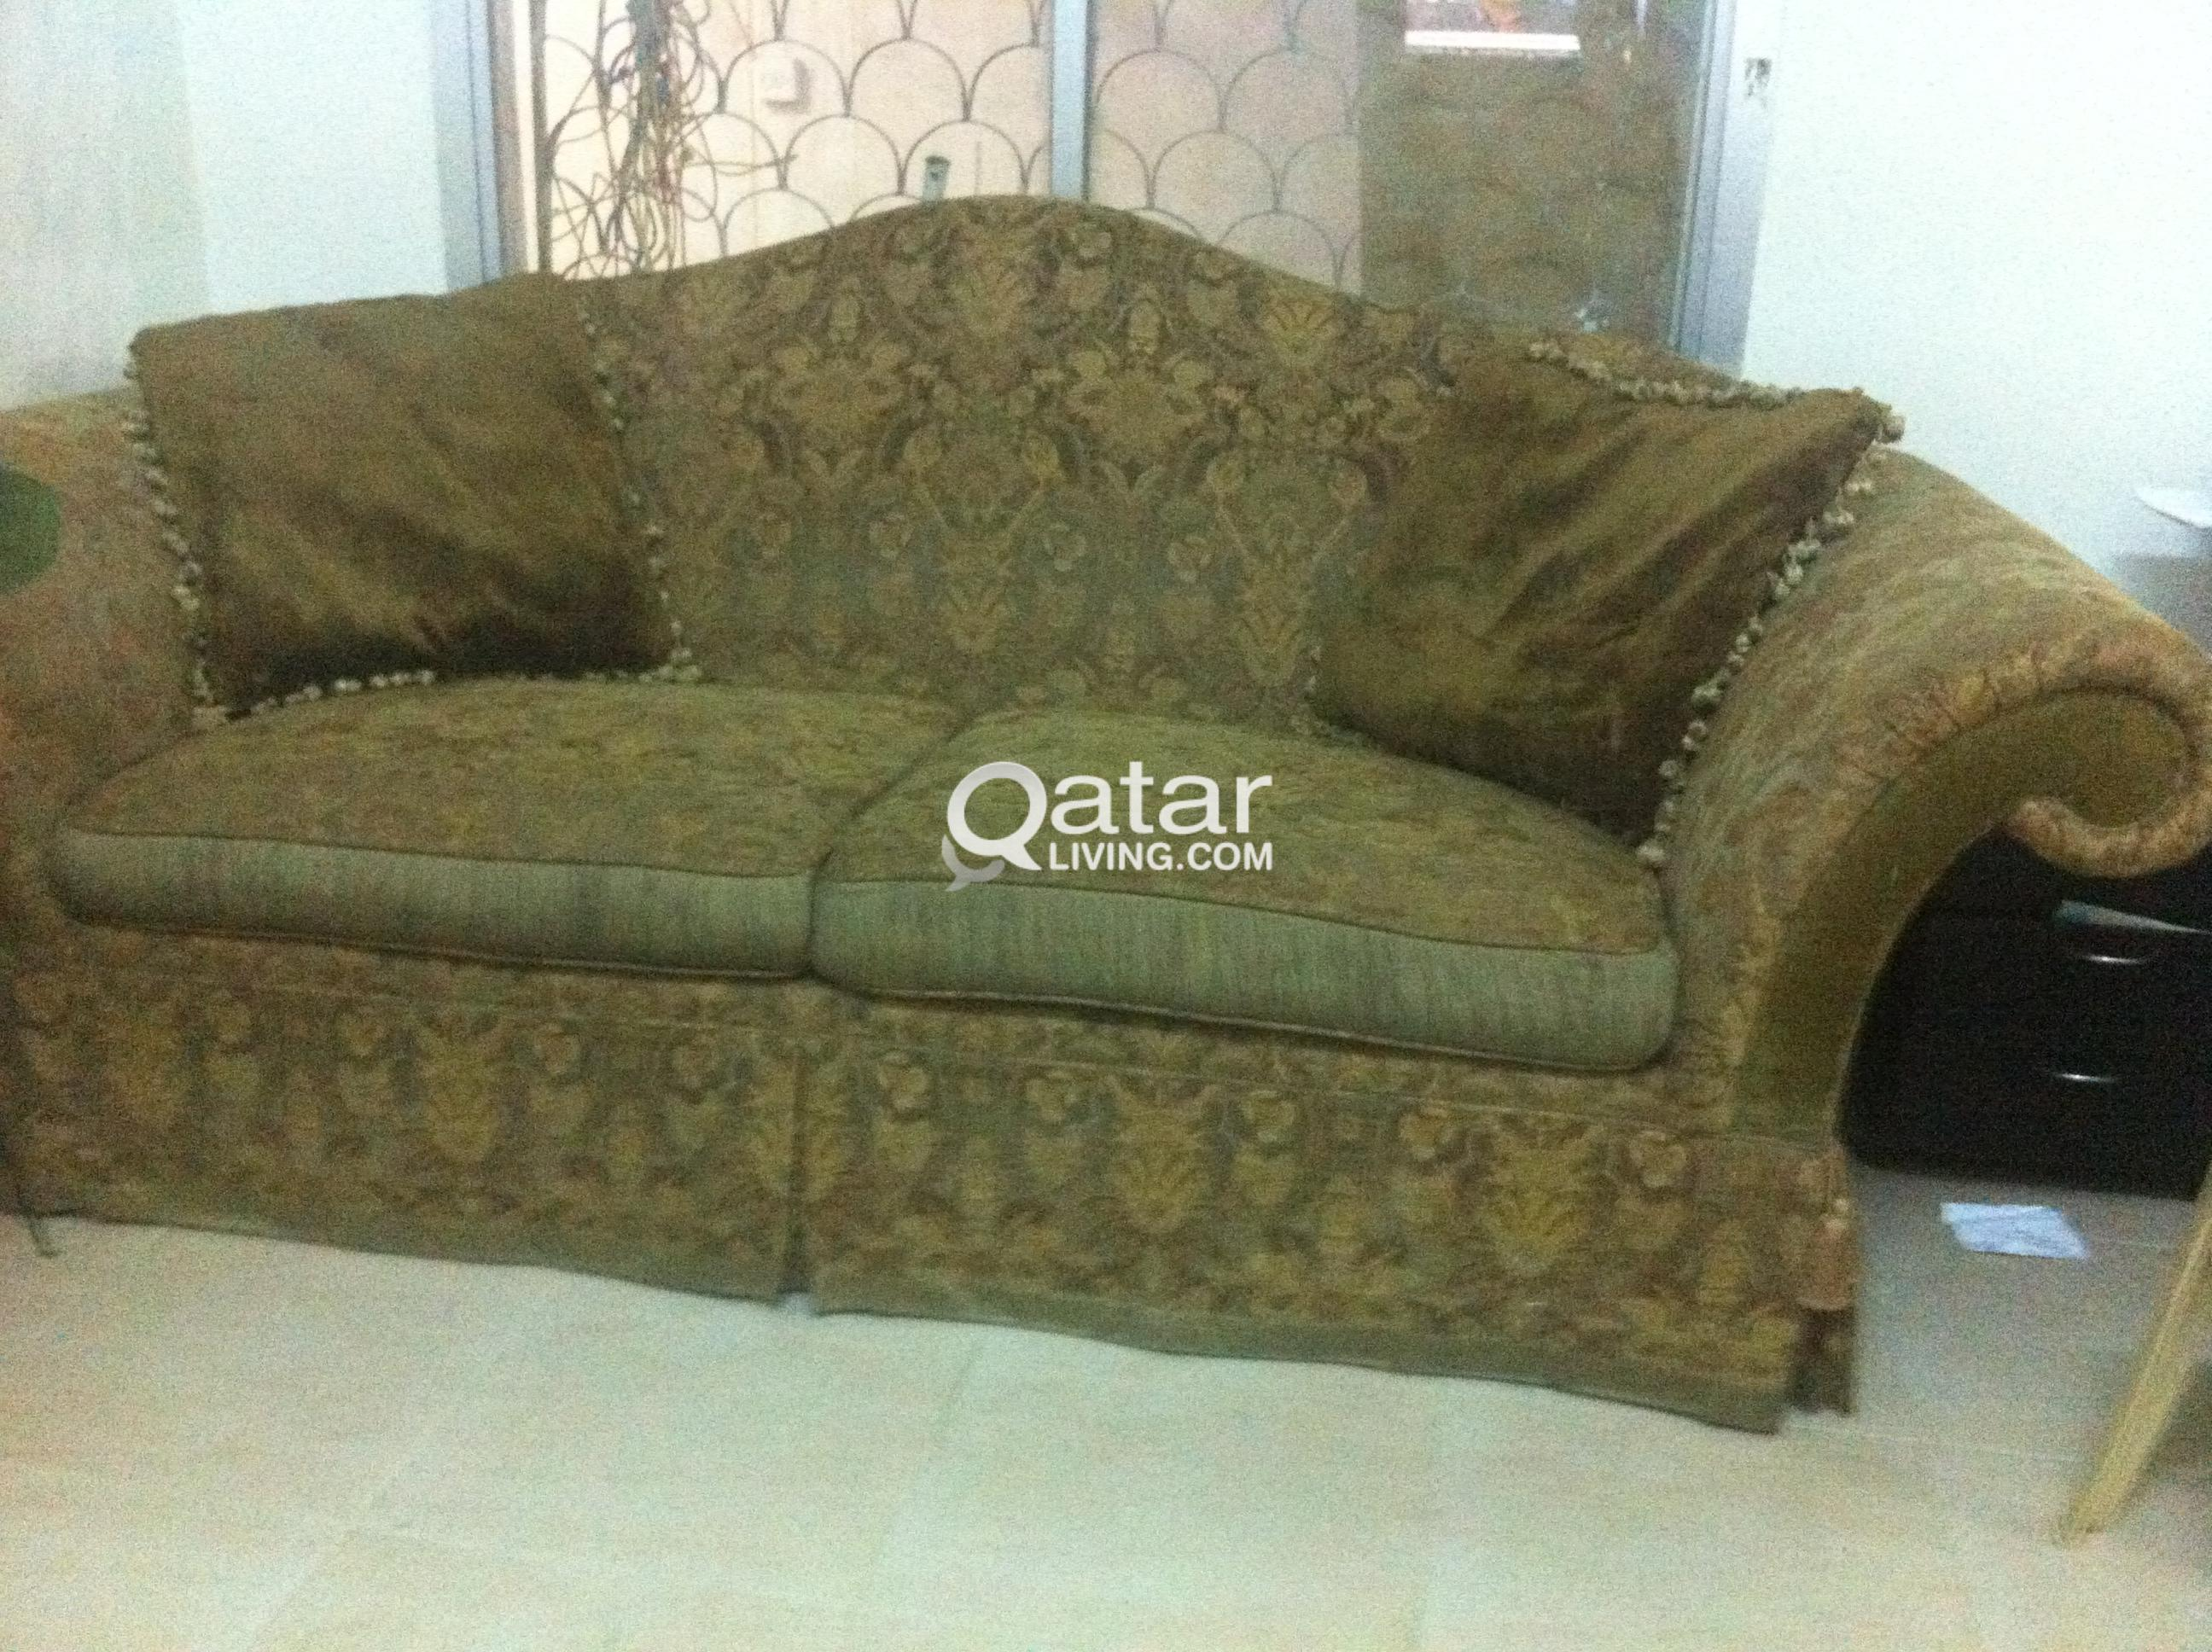 Home Centre Sofa Set For Sale Qatar Living